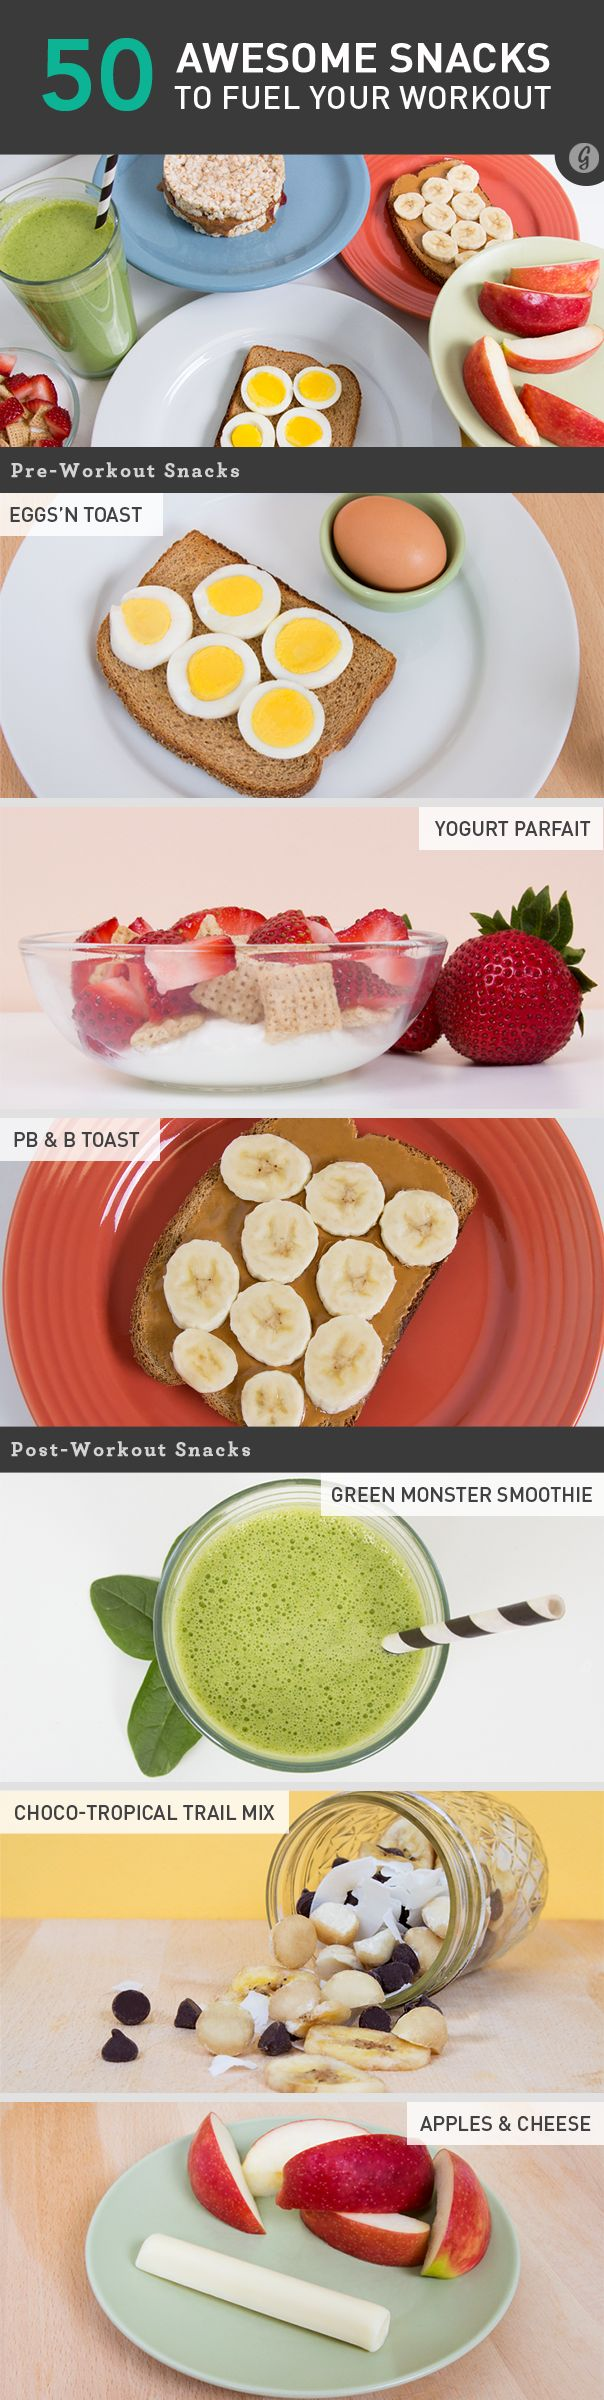 50 Awesome Pre- and Post-Workout Snacks #fitness #workout #snack